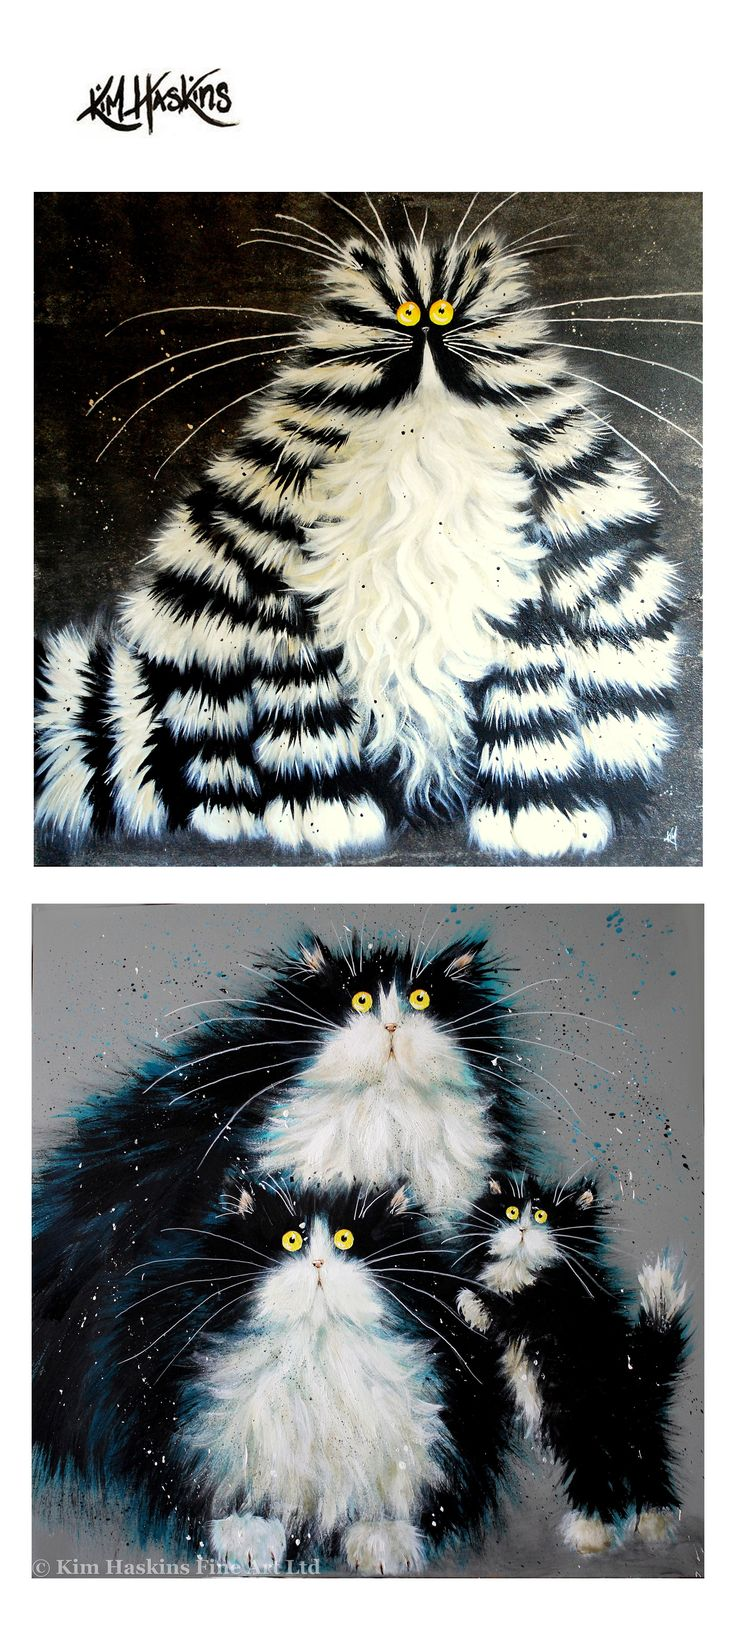 Funny-looking cats by Kim Haskins, British painter and illustrator. #art #painting #cats